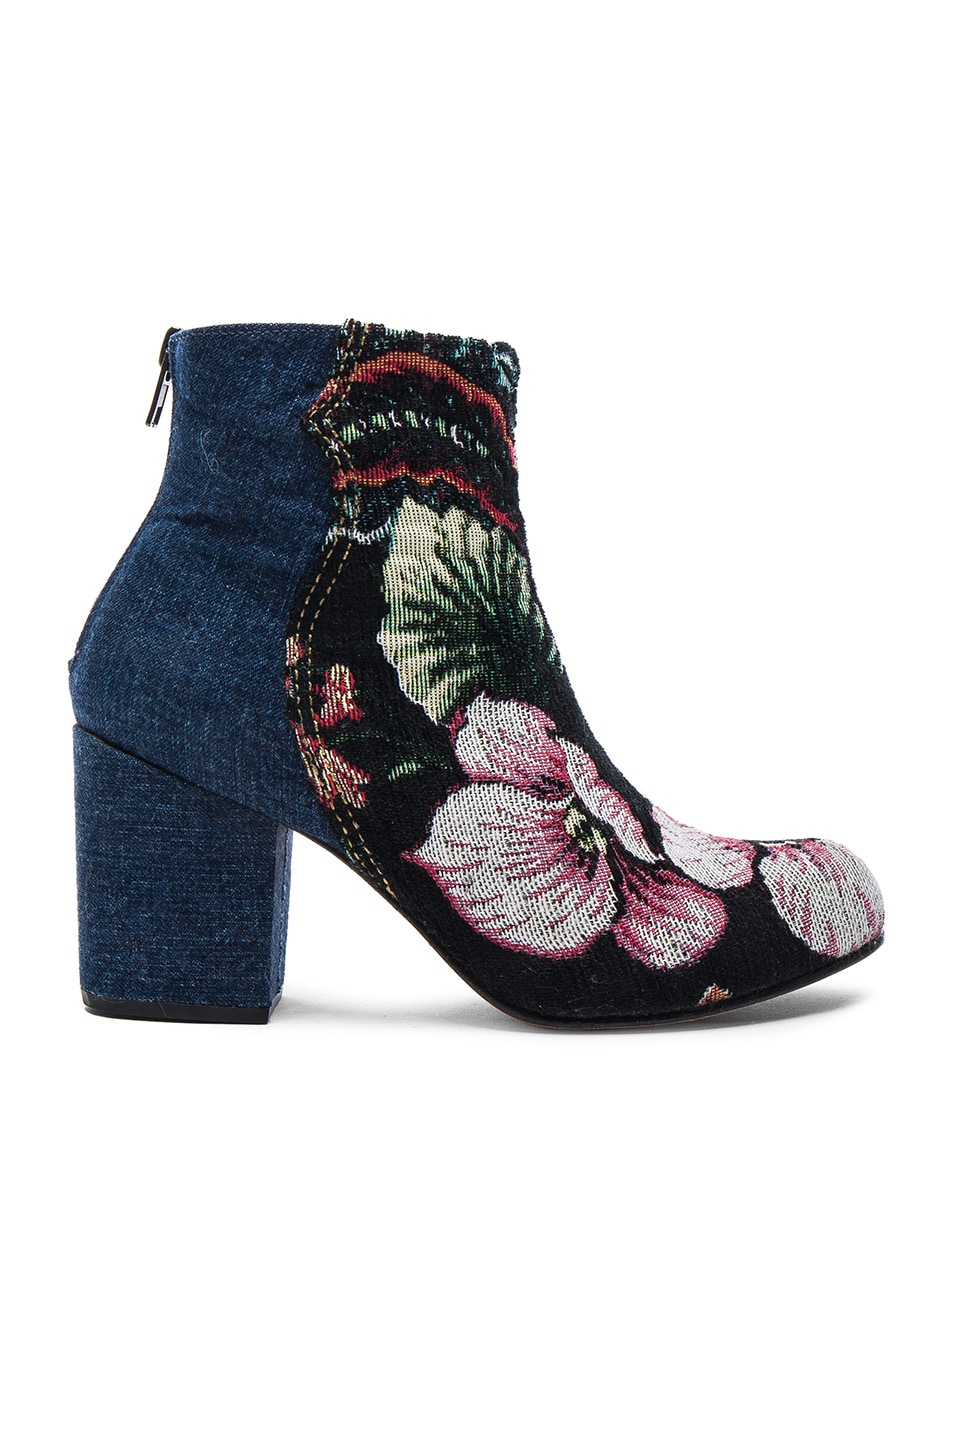 Image 1 of Rachel Comey Tilden Booties in Denim & Brocade